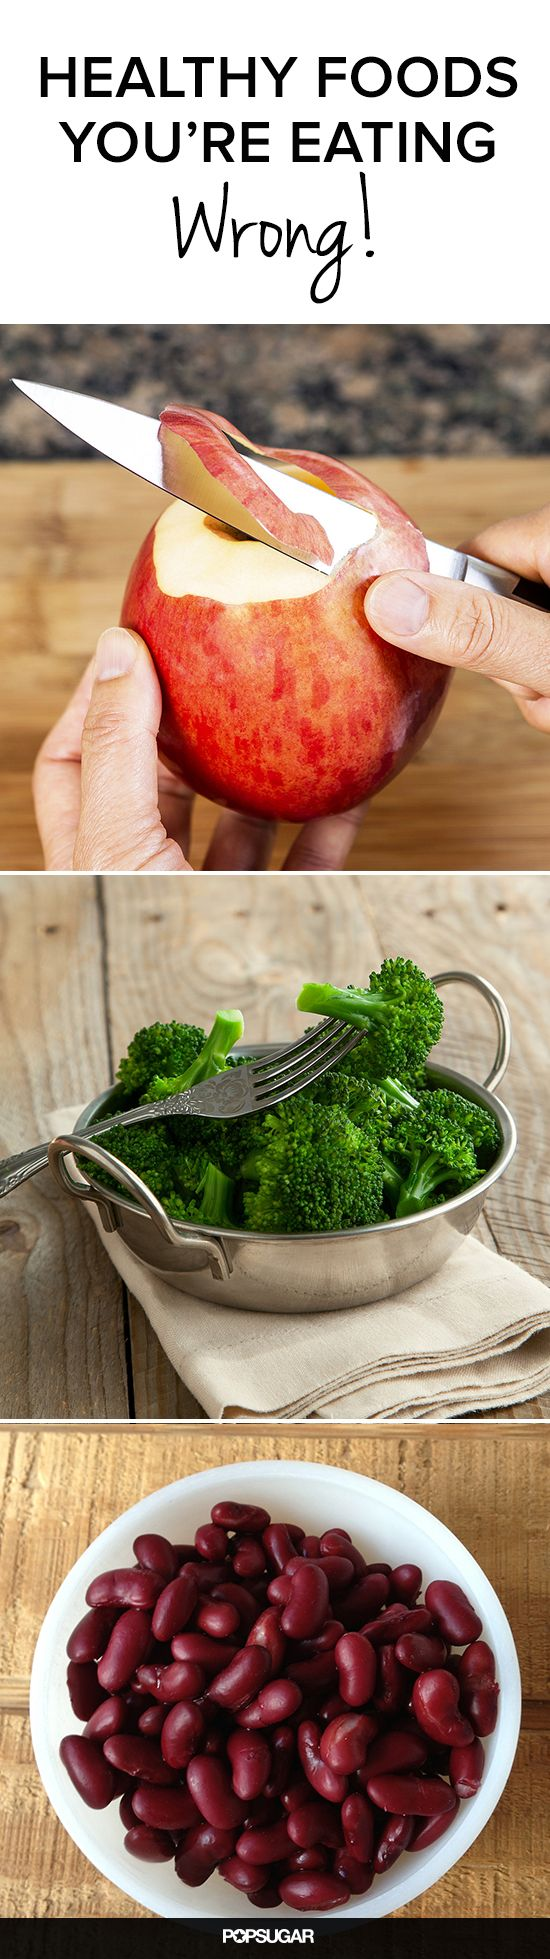 Make sure you are cooking these healthy foods the right way to maximize their nutritional potential.